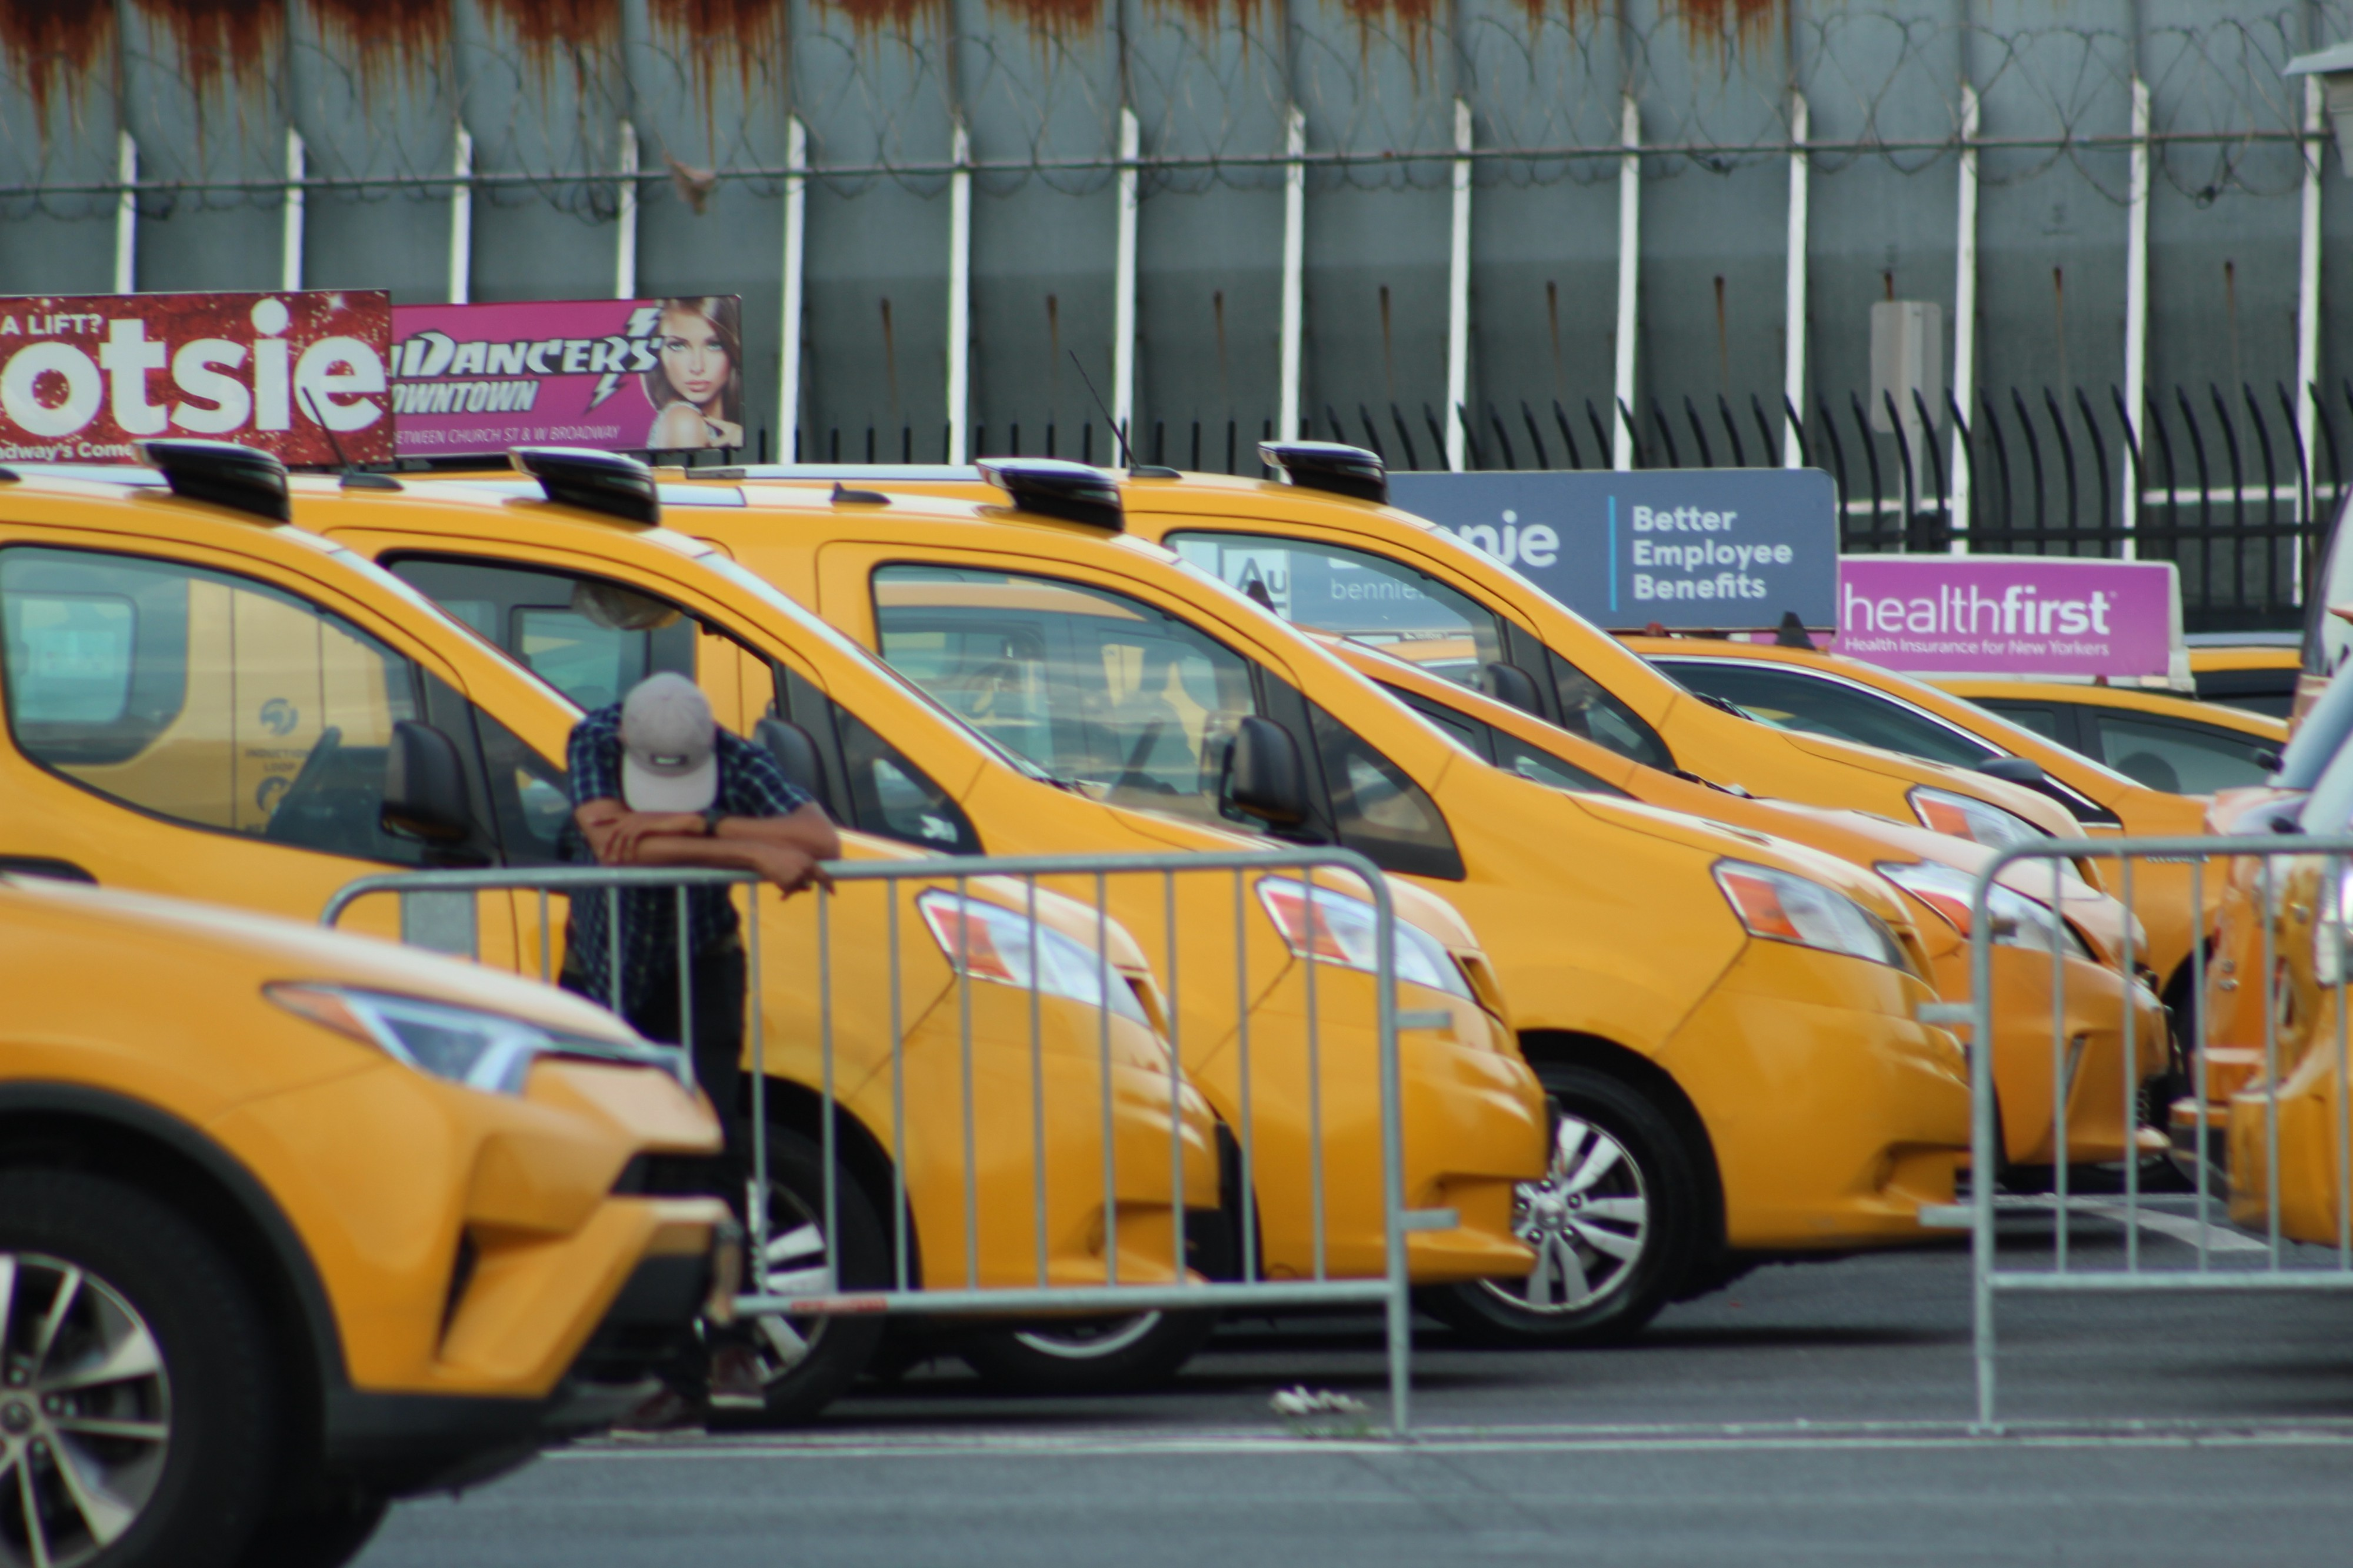 Rivals on the Road, Uber and Cab Drivers Share a Lot of